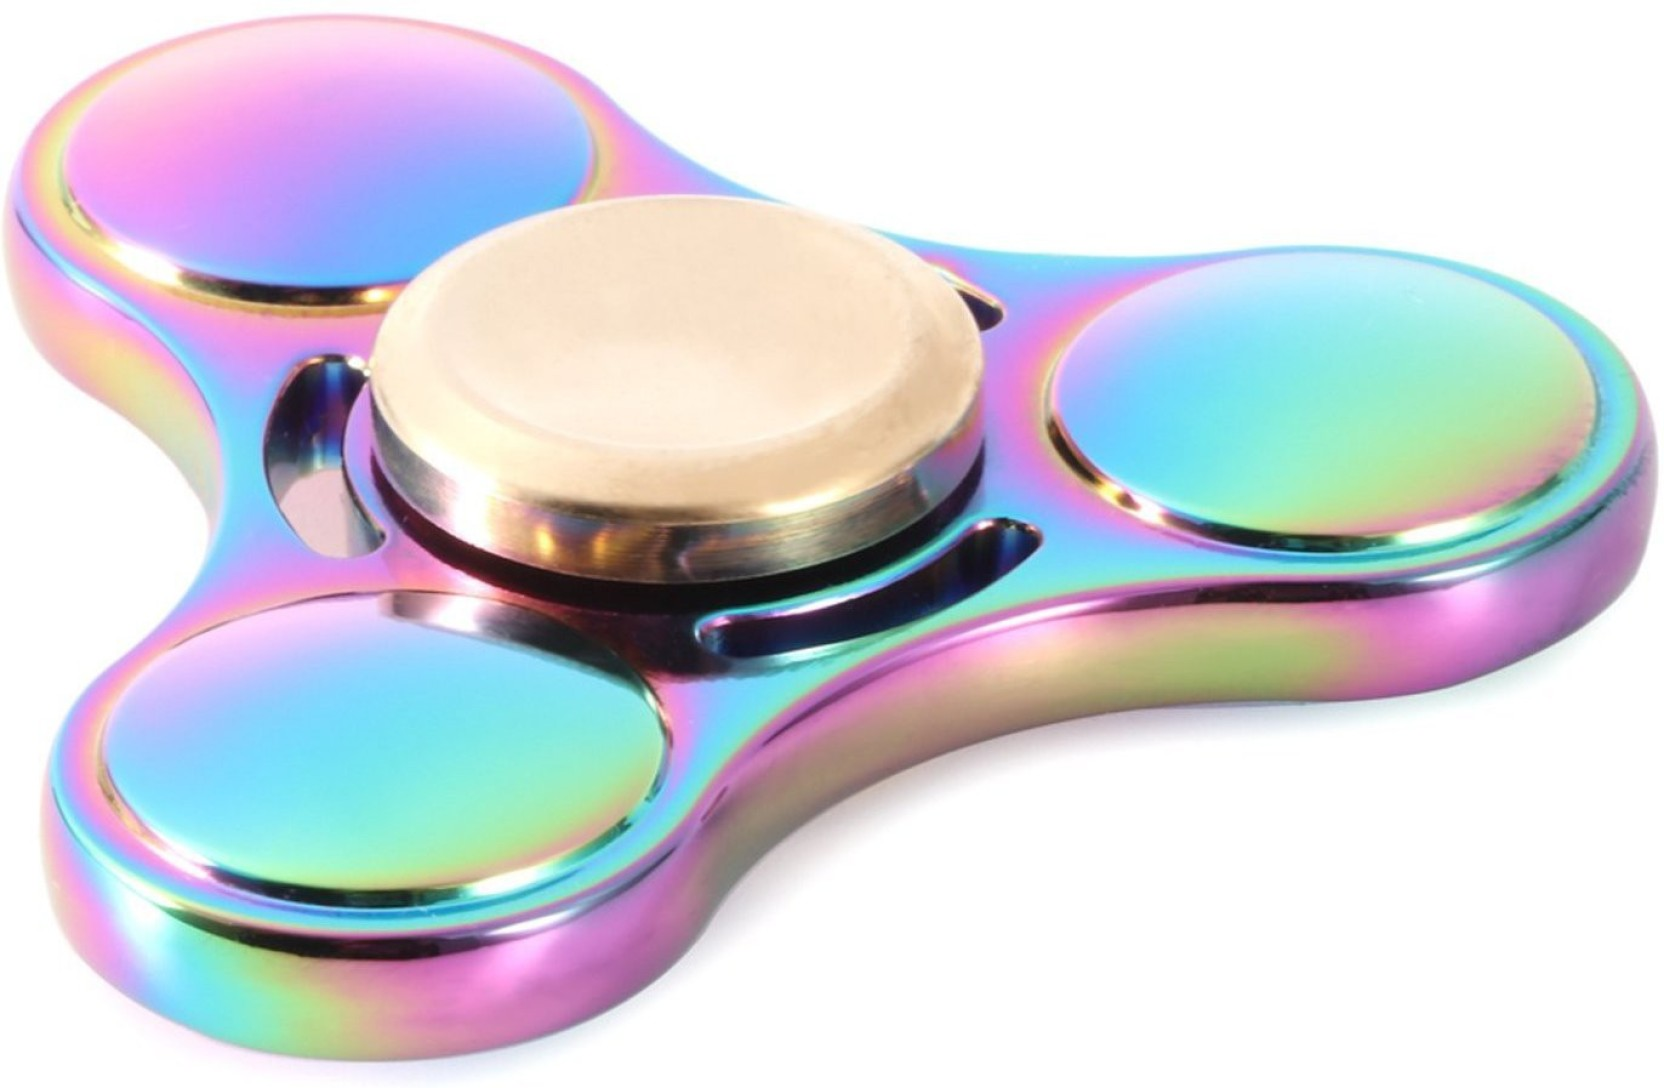 Spacerail Ufo Rainbow Colorful Fidget Hand Spinner Metal Body With Ckf Or Long Spinning Time On Offer